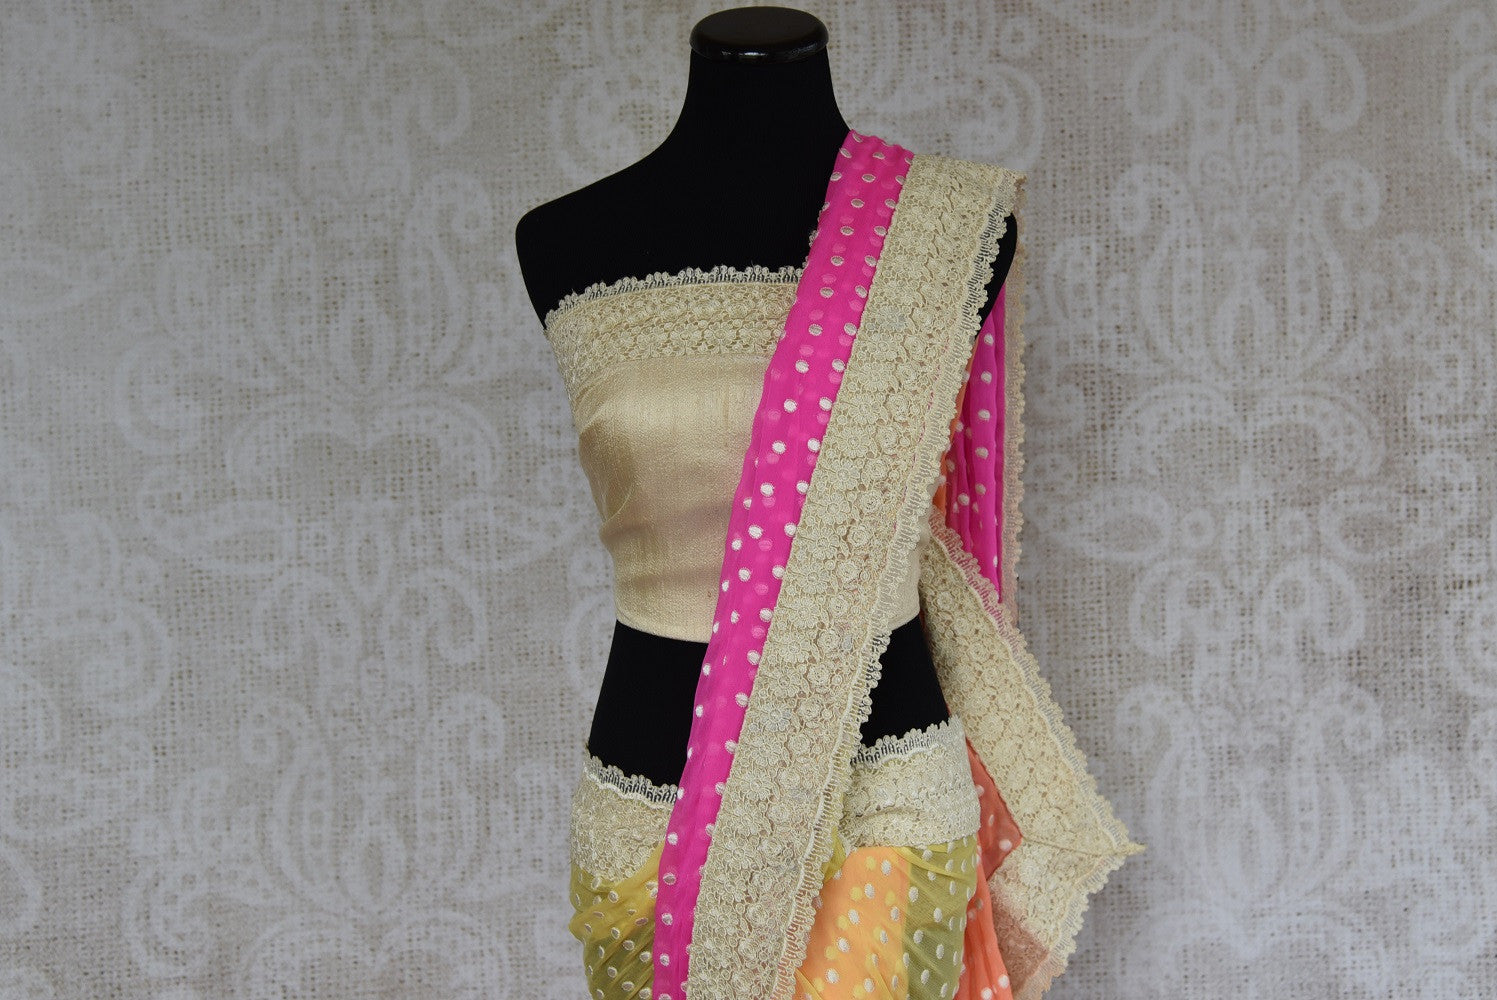 90B425 Vibrant pink, yellow, green & orange, shaded saree with a lovely lace border. The multi-colored ethnic georgette saree makes for a great Indian outfit for wedding functions. Buy it online in USA at Pure Elegance.